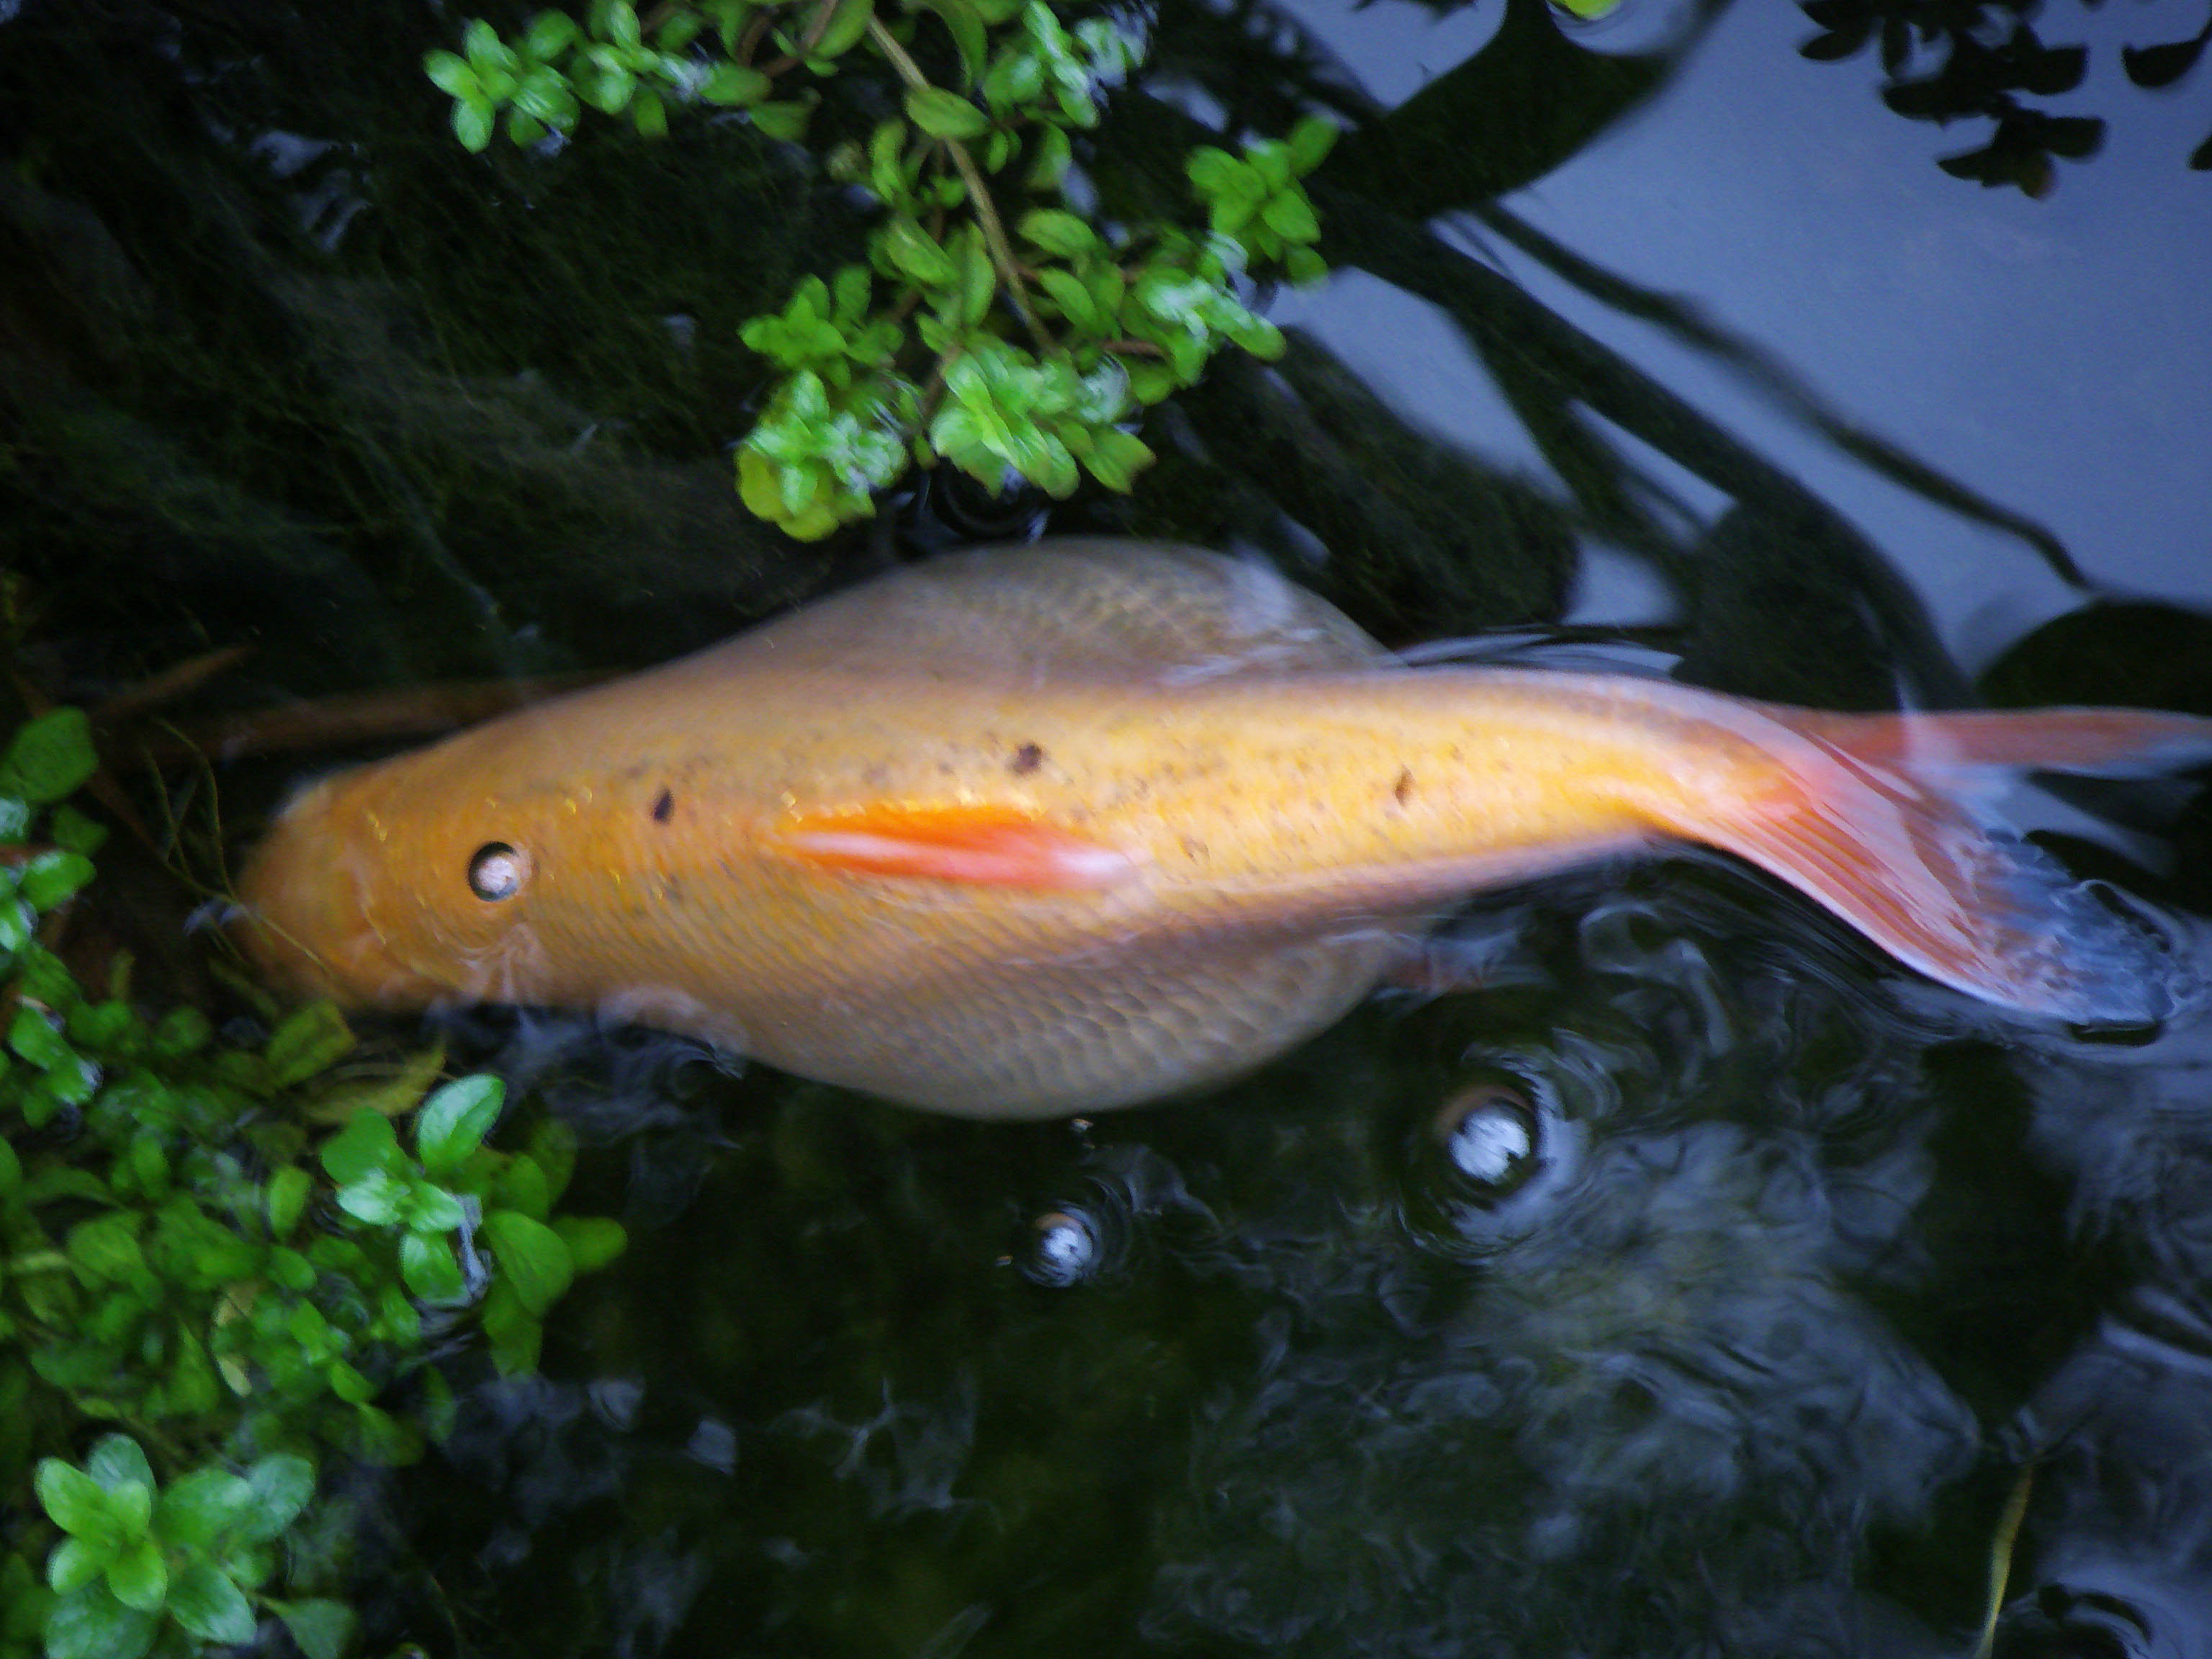 fishkeeping bloated golden orfe forums pond help and advice